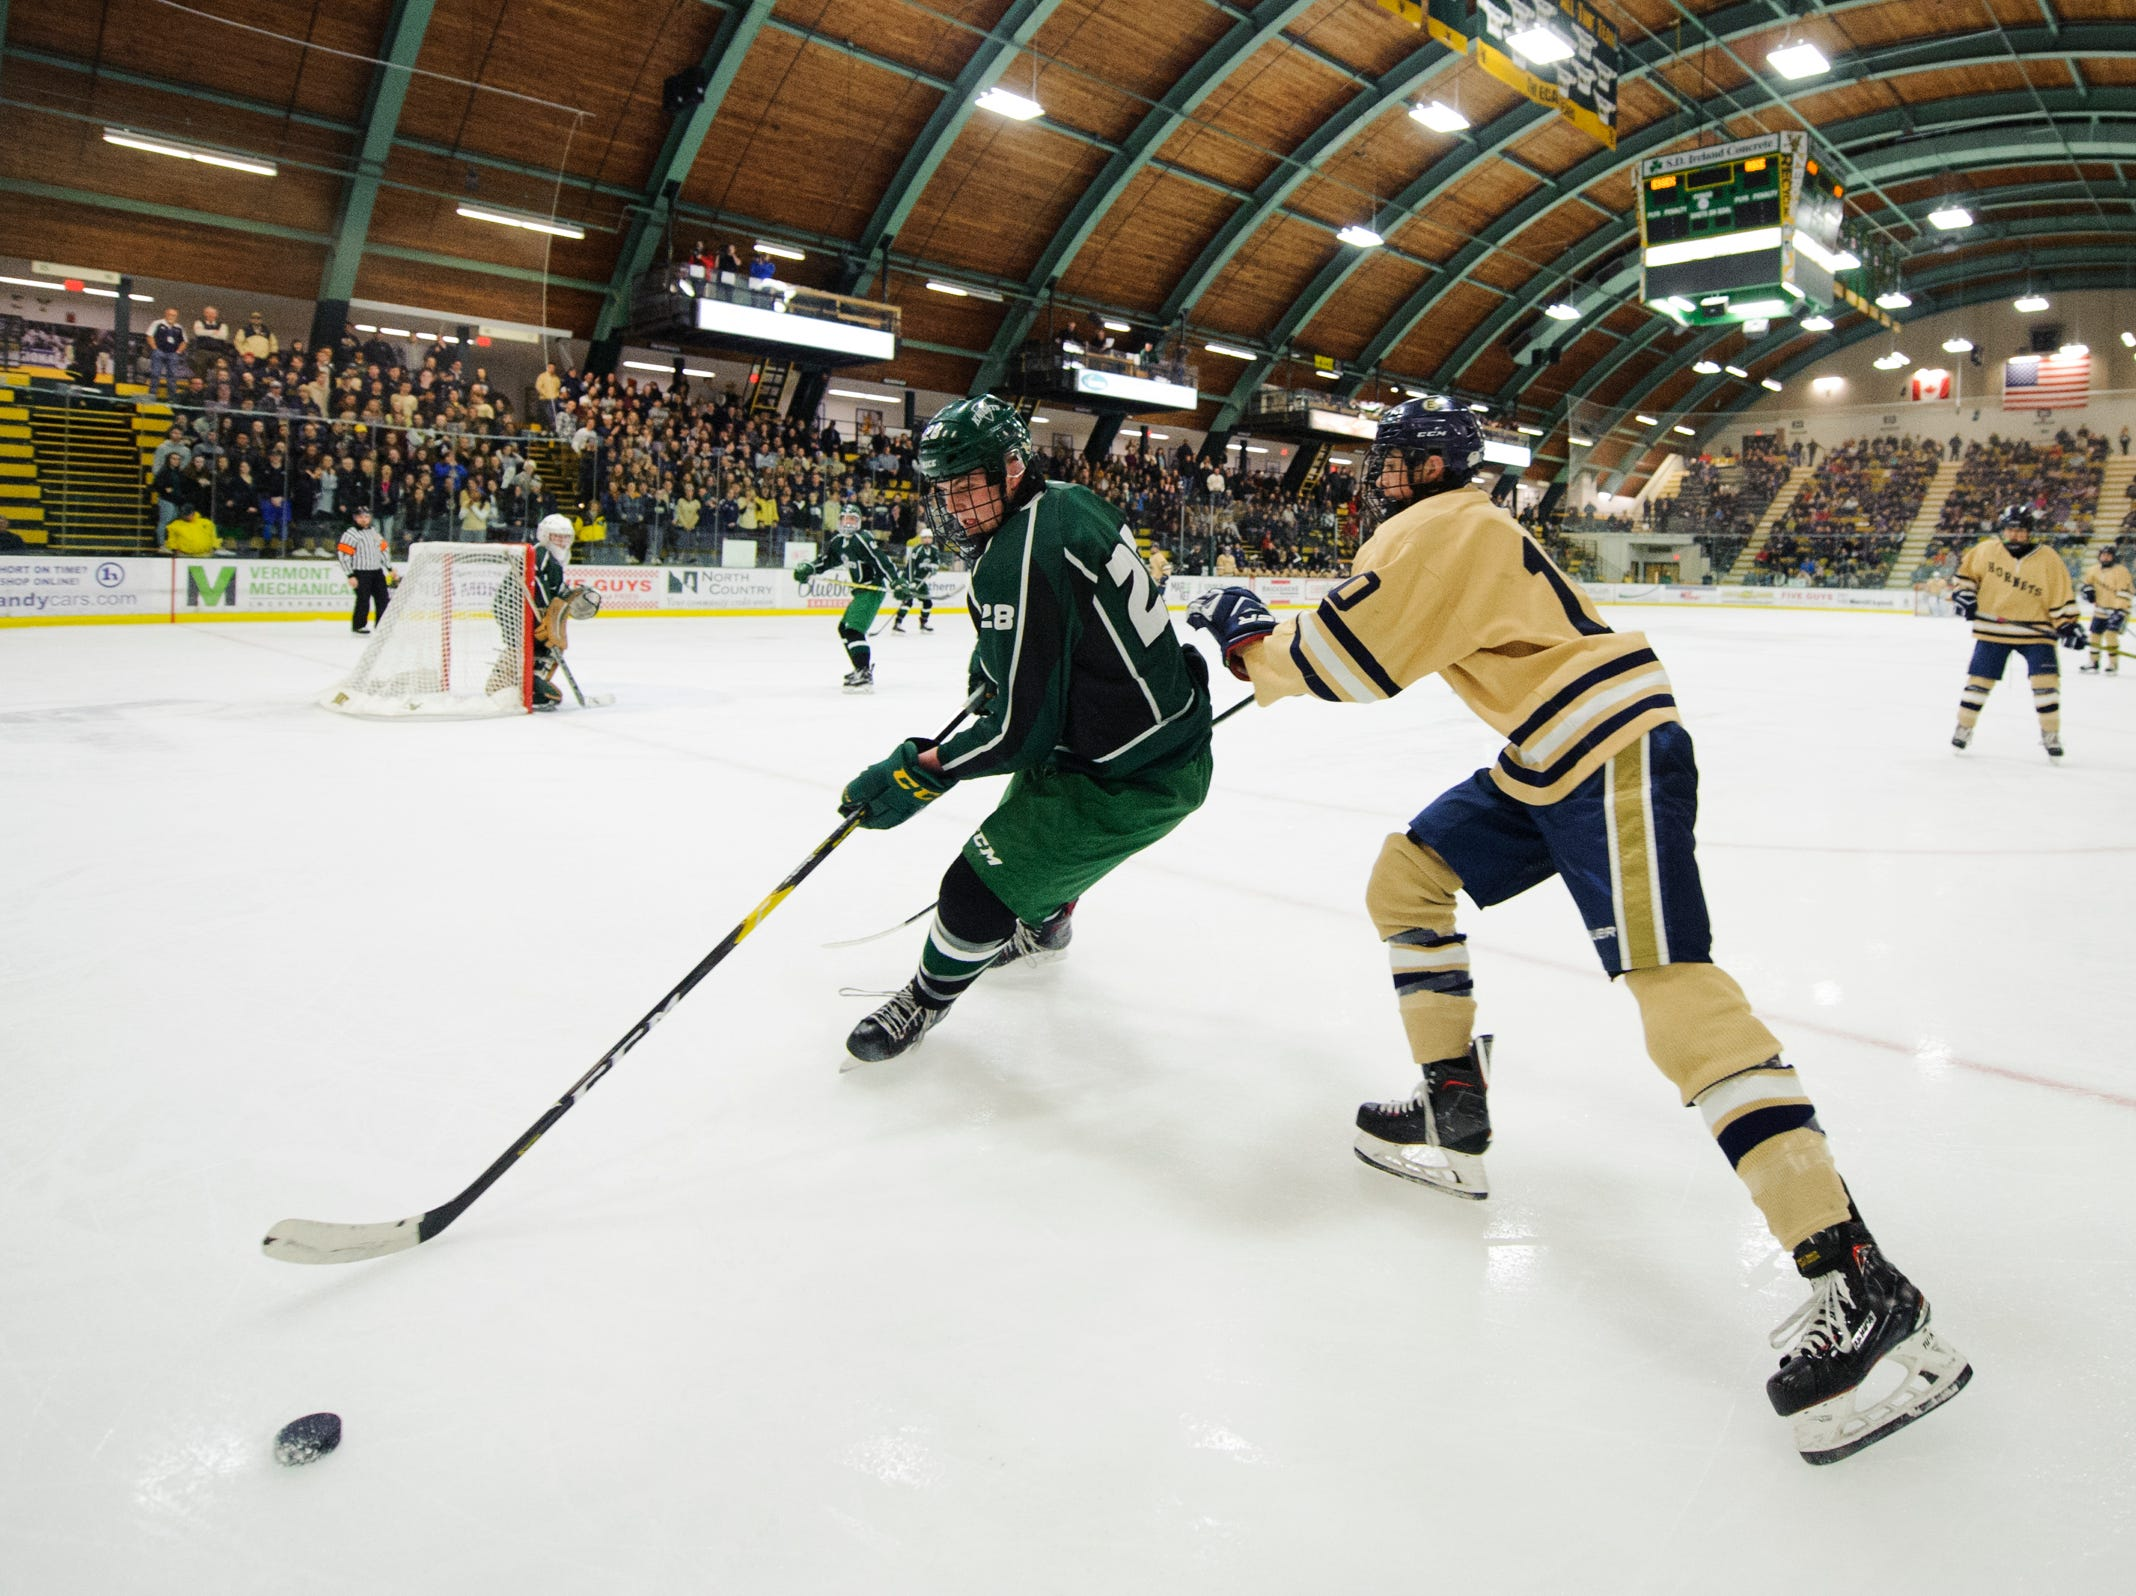 Rice's Kairan Connolly (28) skates with the puck past Essex's Charles Wiegand IV (10) during the DI boys hockey championship game between the Rice Green Knights and the Essex Hornets at Gutterson Field House on Wednesday night March 13, 2019 in Burlington, Vermont.